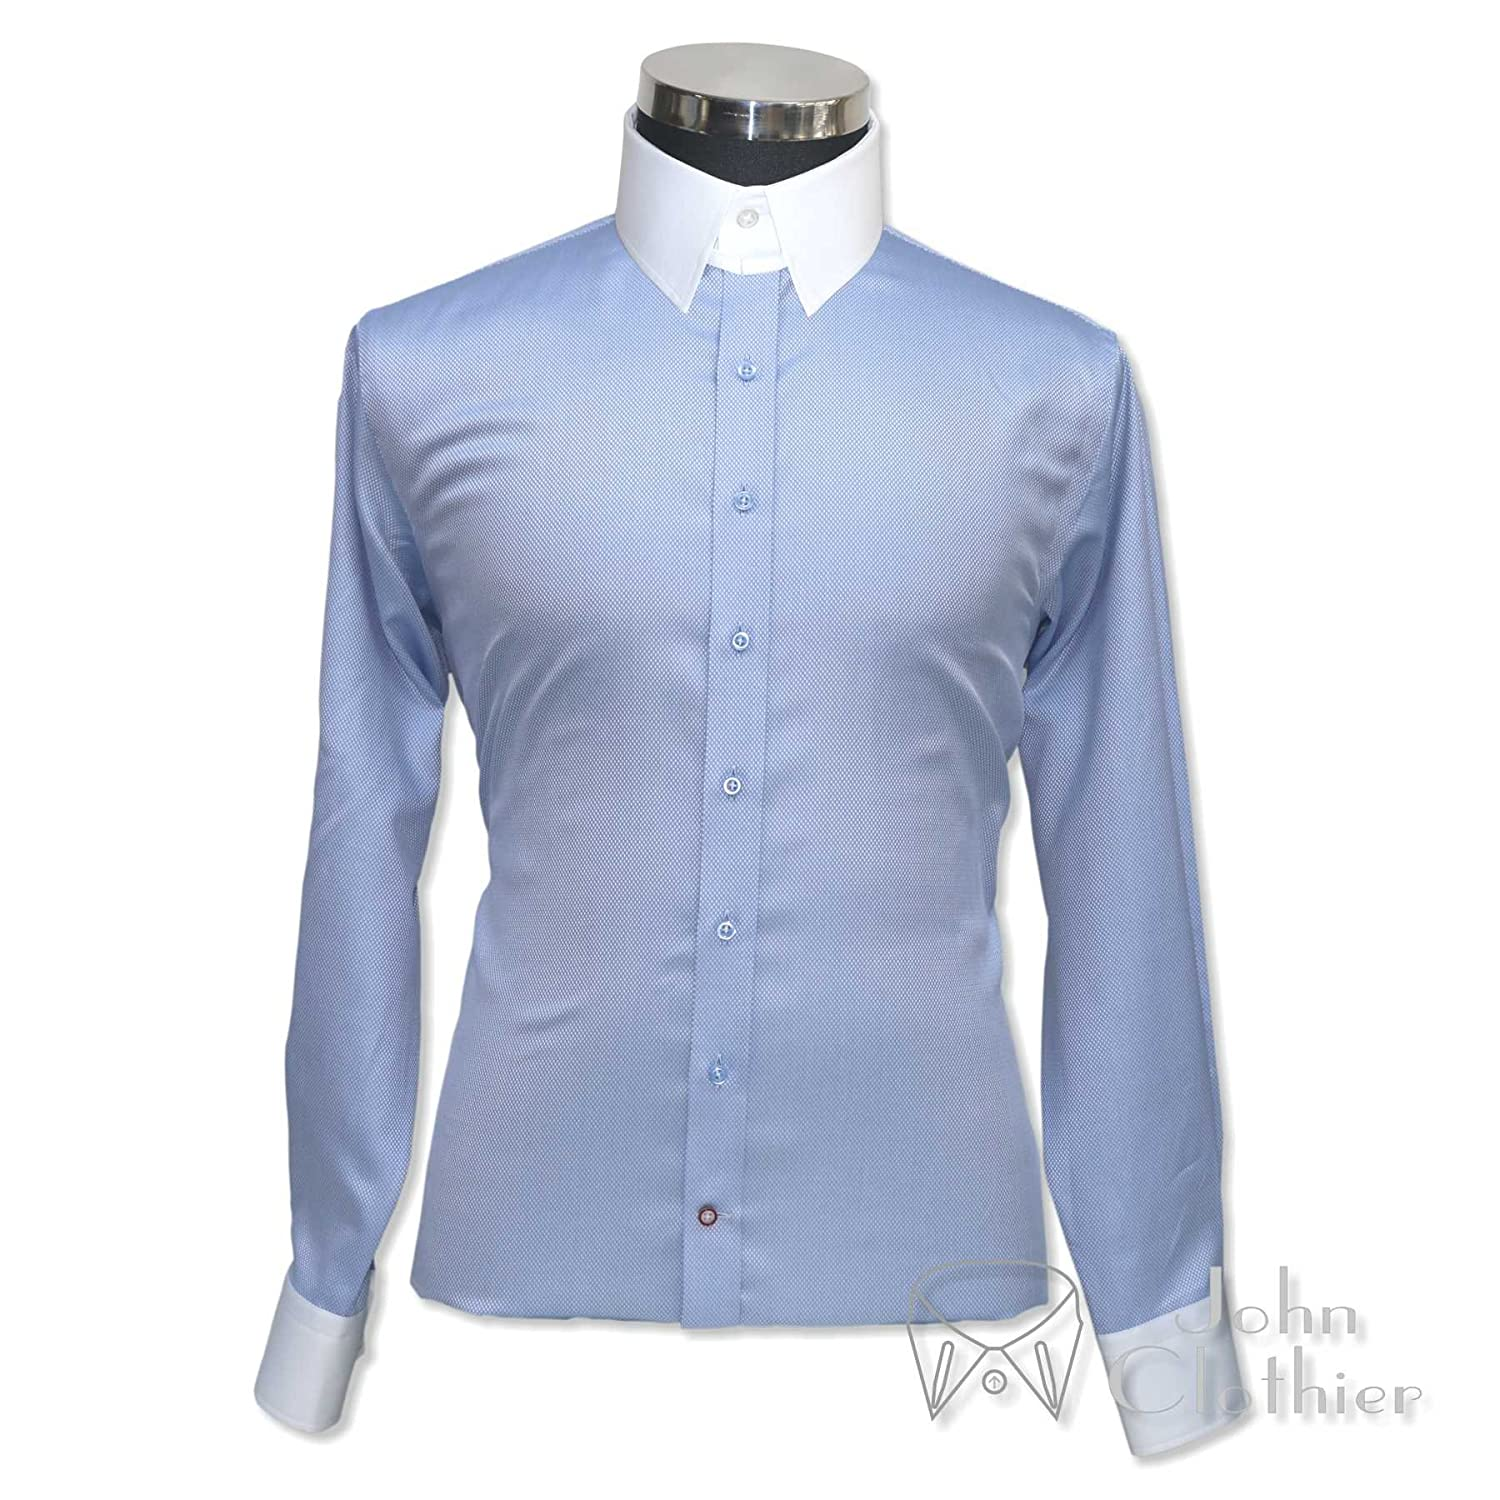 Edwardian Men's Shirts & Sweaters WhitePilotShirts Tab Collar Mens Bankers Shirt Sky Blue Diamond 100% Cotton Loop Long Sleeves Single Cuff Gents 100-01 $59.99 AT vintagedancer.com